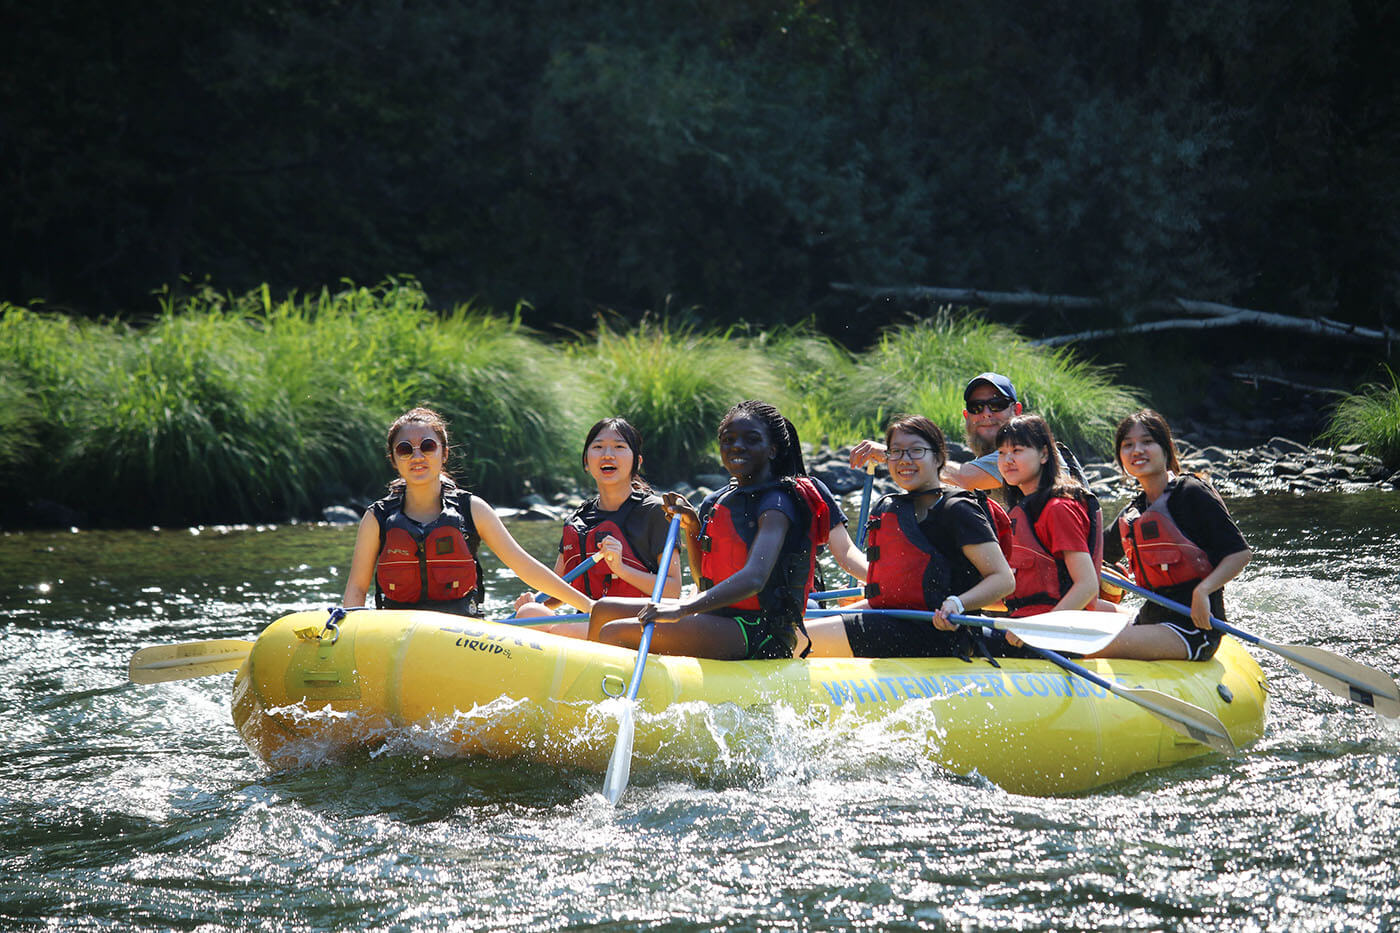 Christian Boarding School goes river rafting on the Rogue River